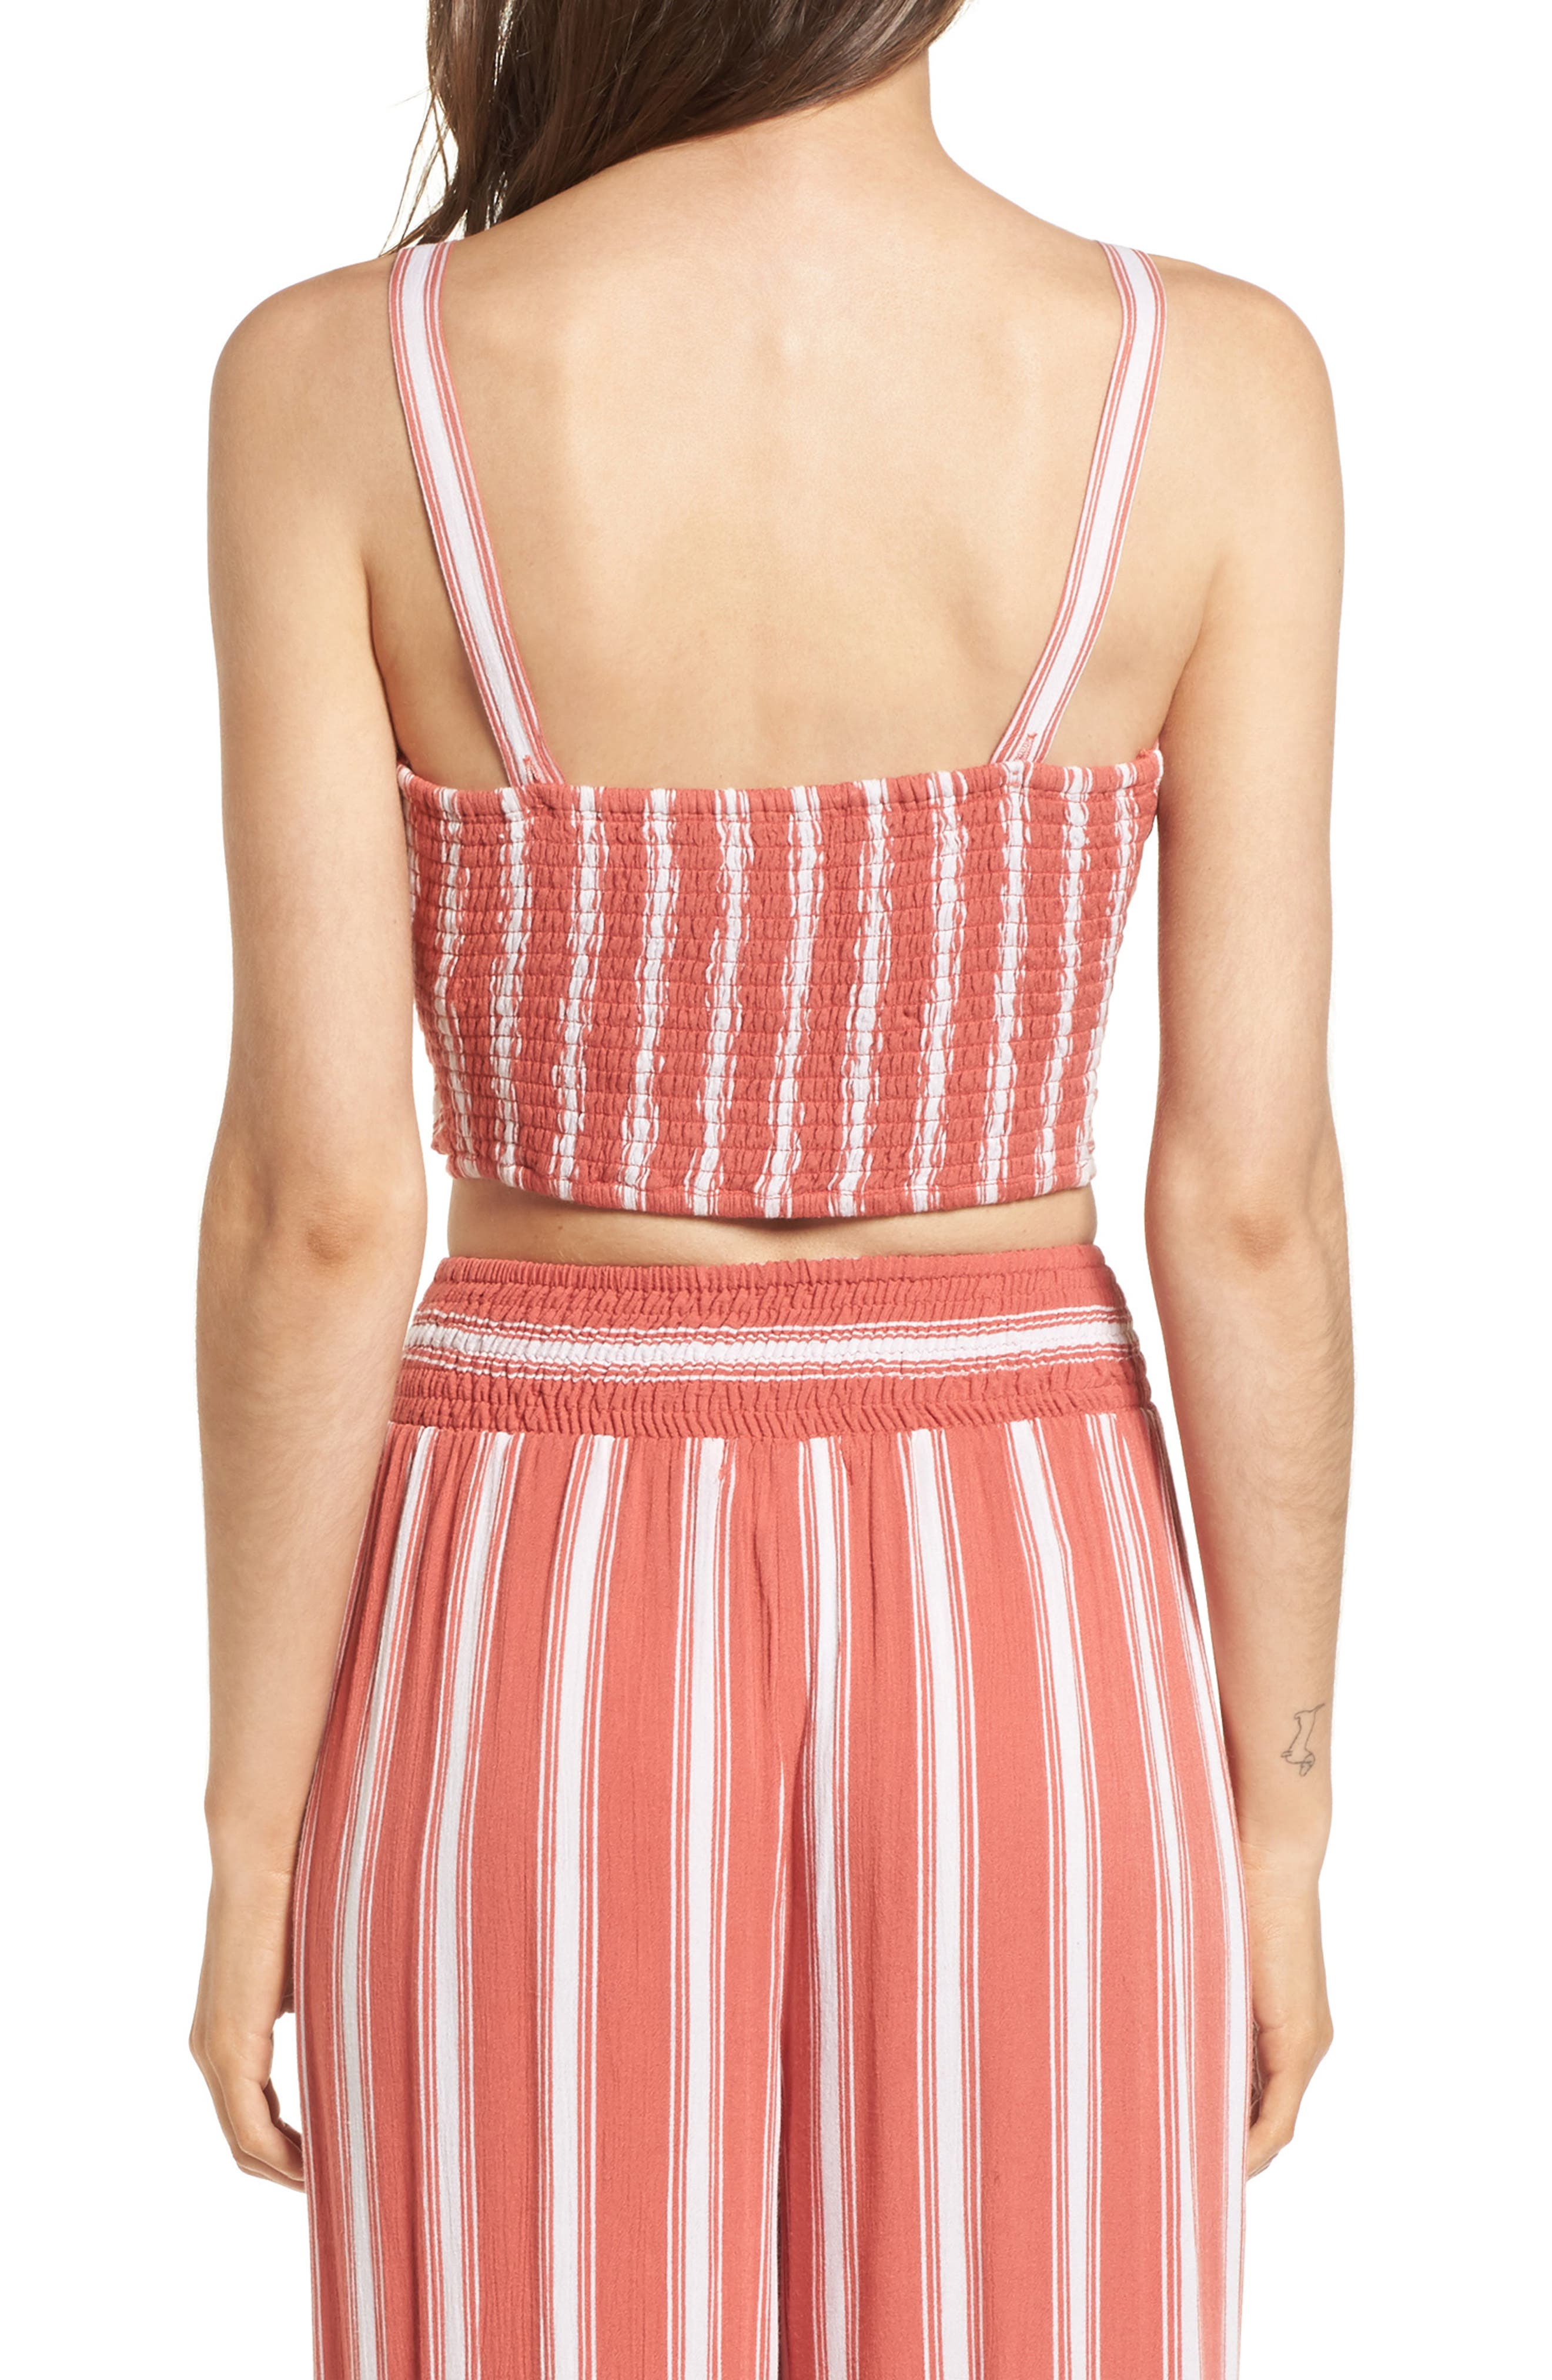 Stripe Smocked Crop Top,                             Alternate thumbnail 3, color,                             Dusty Coral/ Ivory